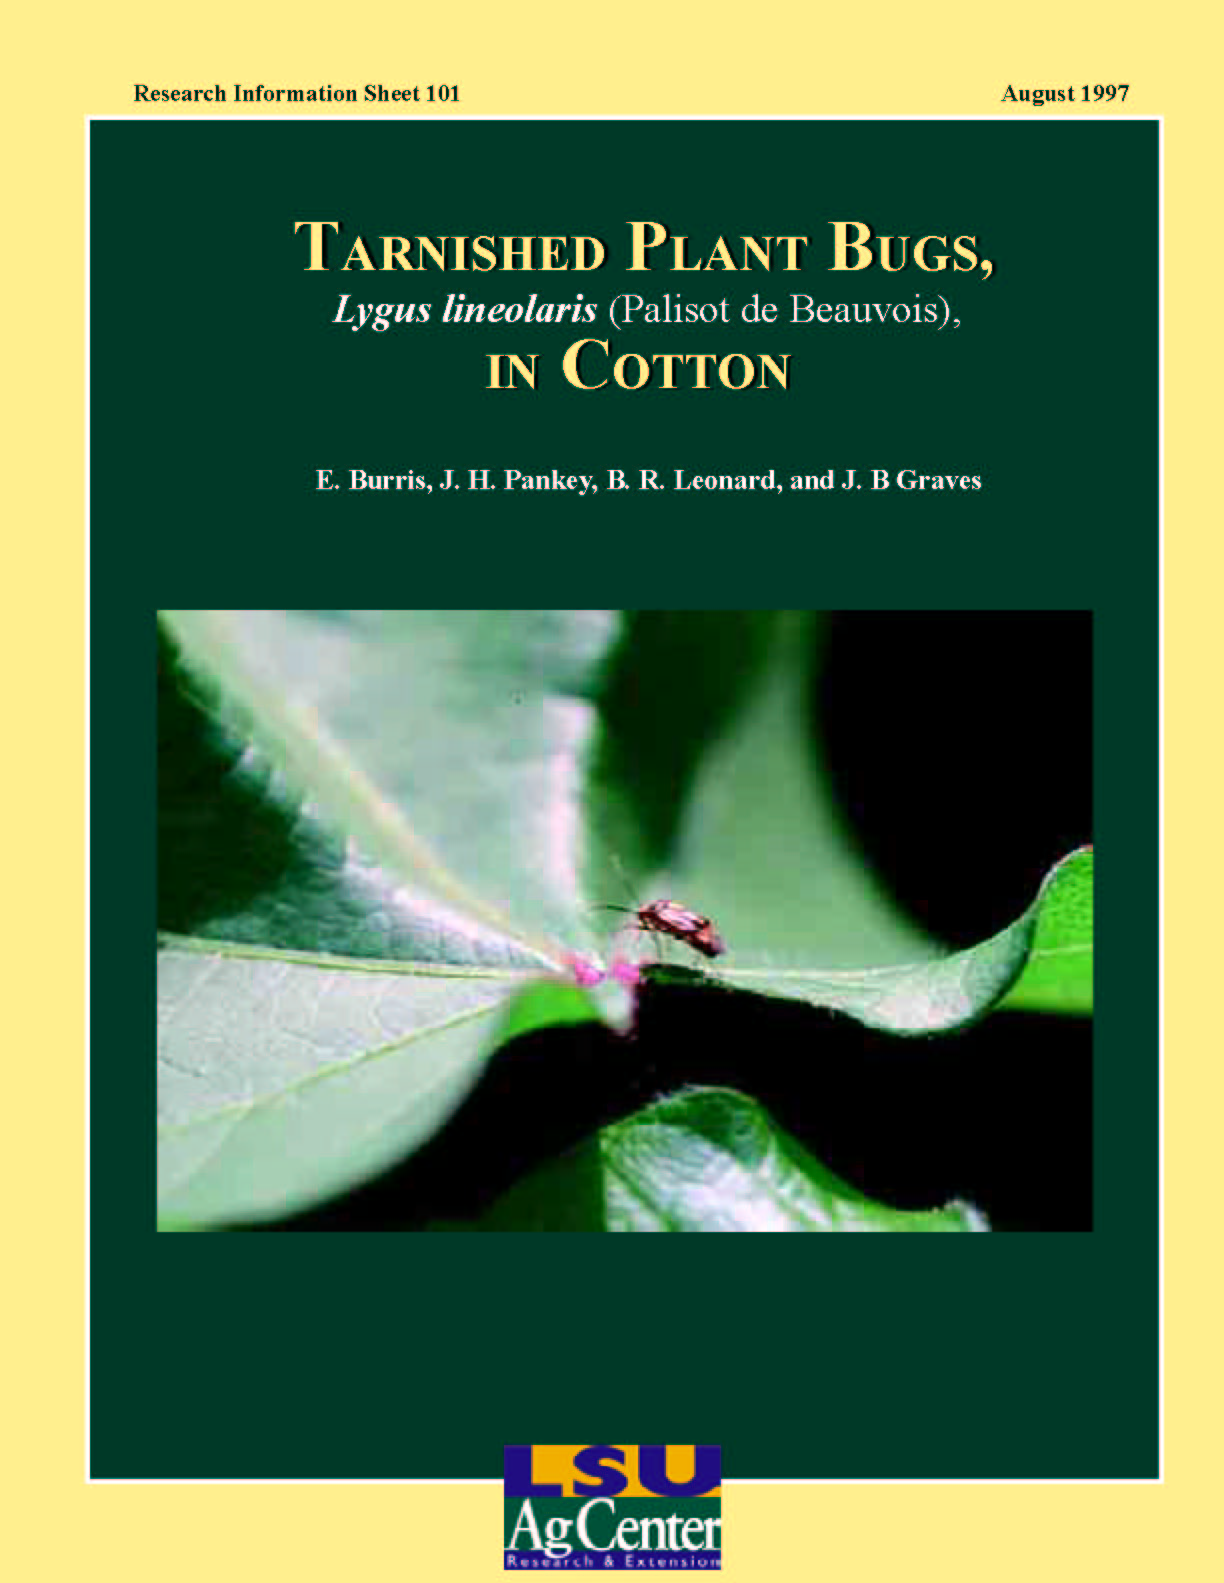 Tarnished Plant Bugs in Cotton (August 1997)